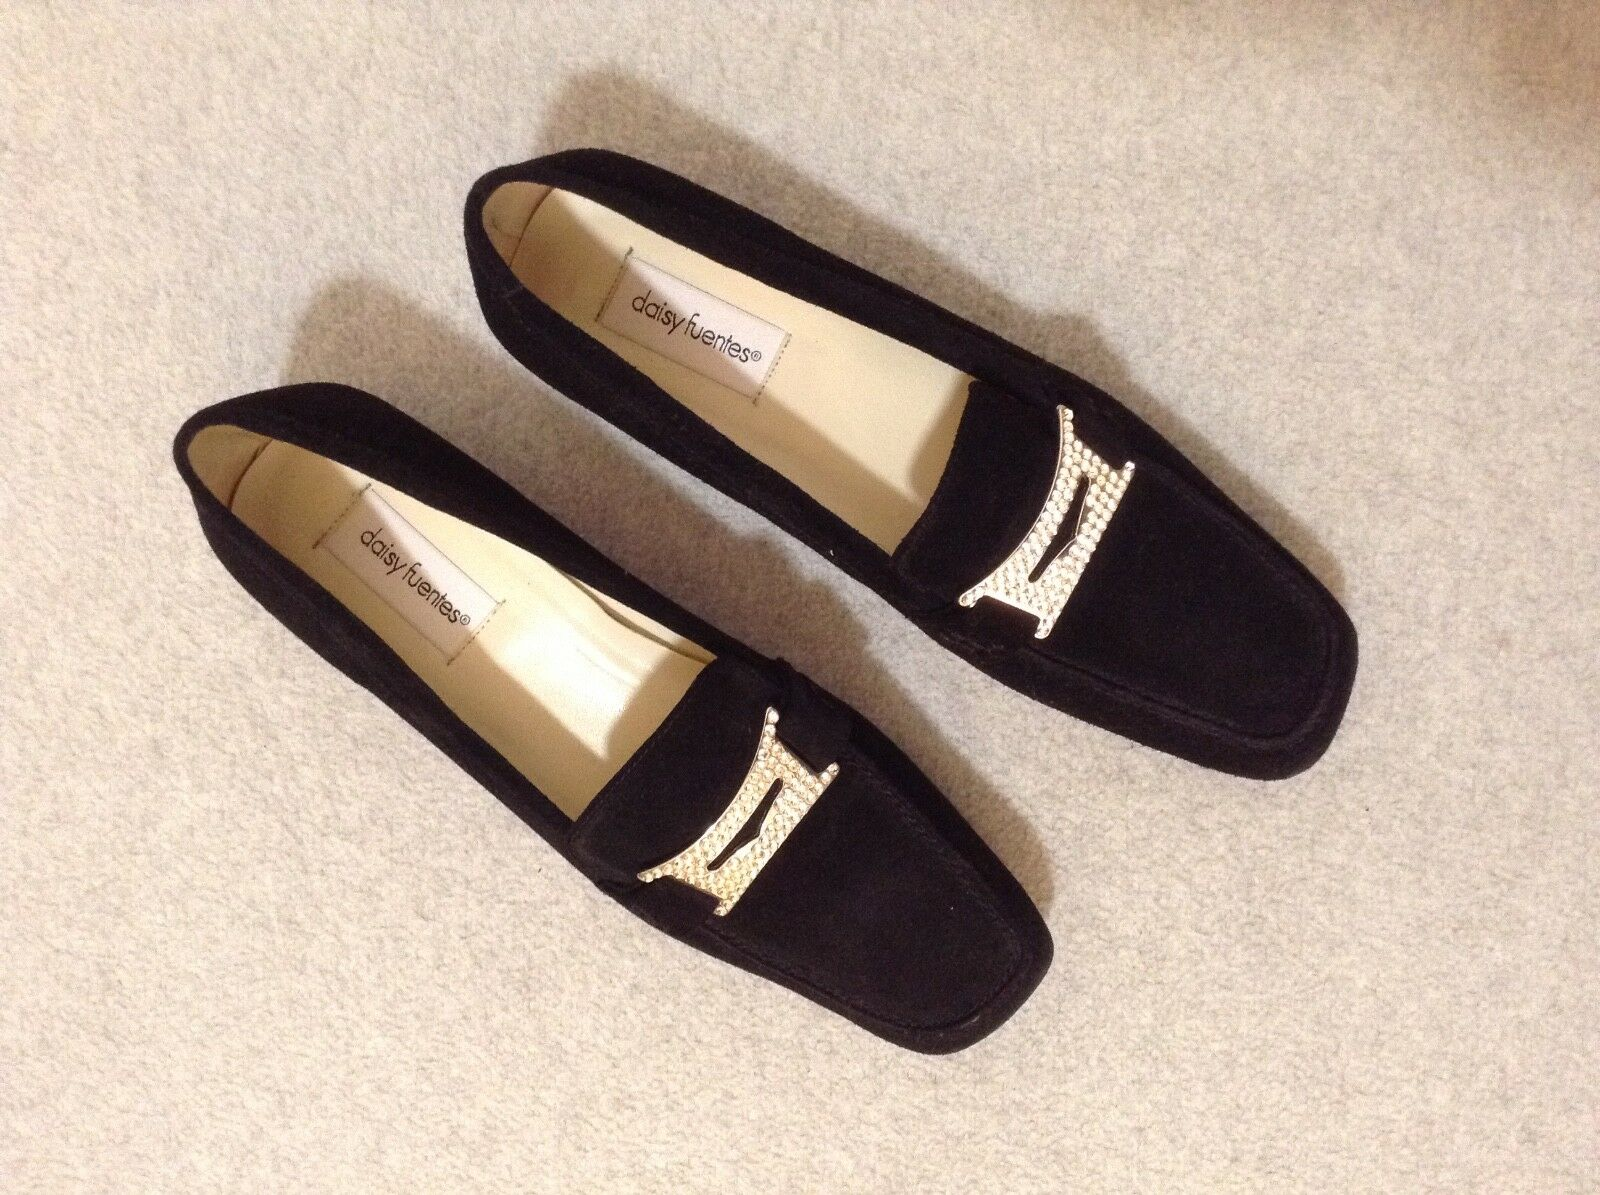 Daisy Fuentes Women's Loafer 9M Leather Upper Black Loafer Women's w/Sparkly Decor NEW! (SBx-5) 6ea5ba